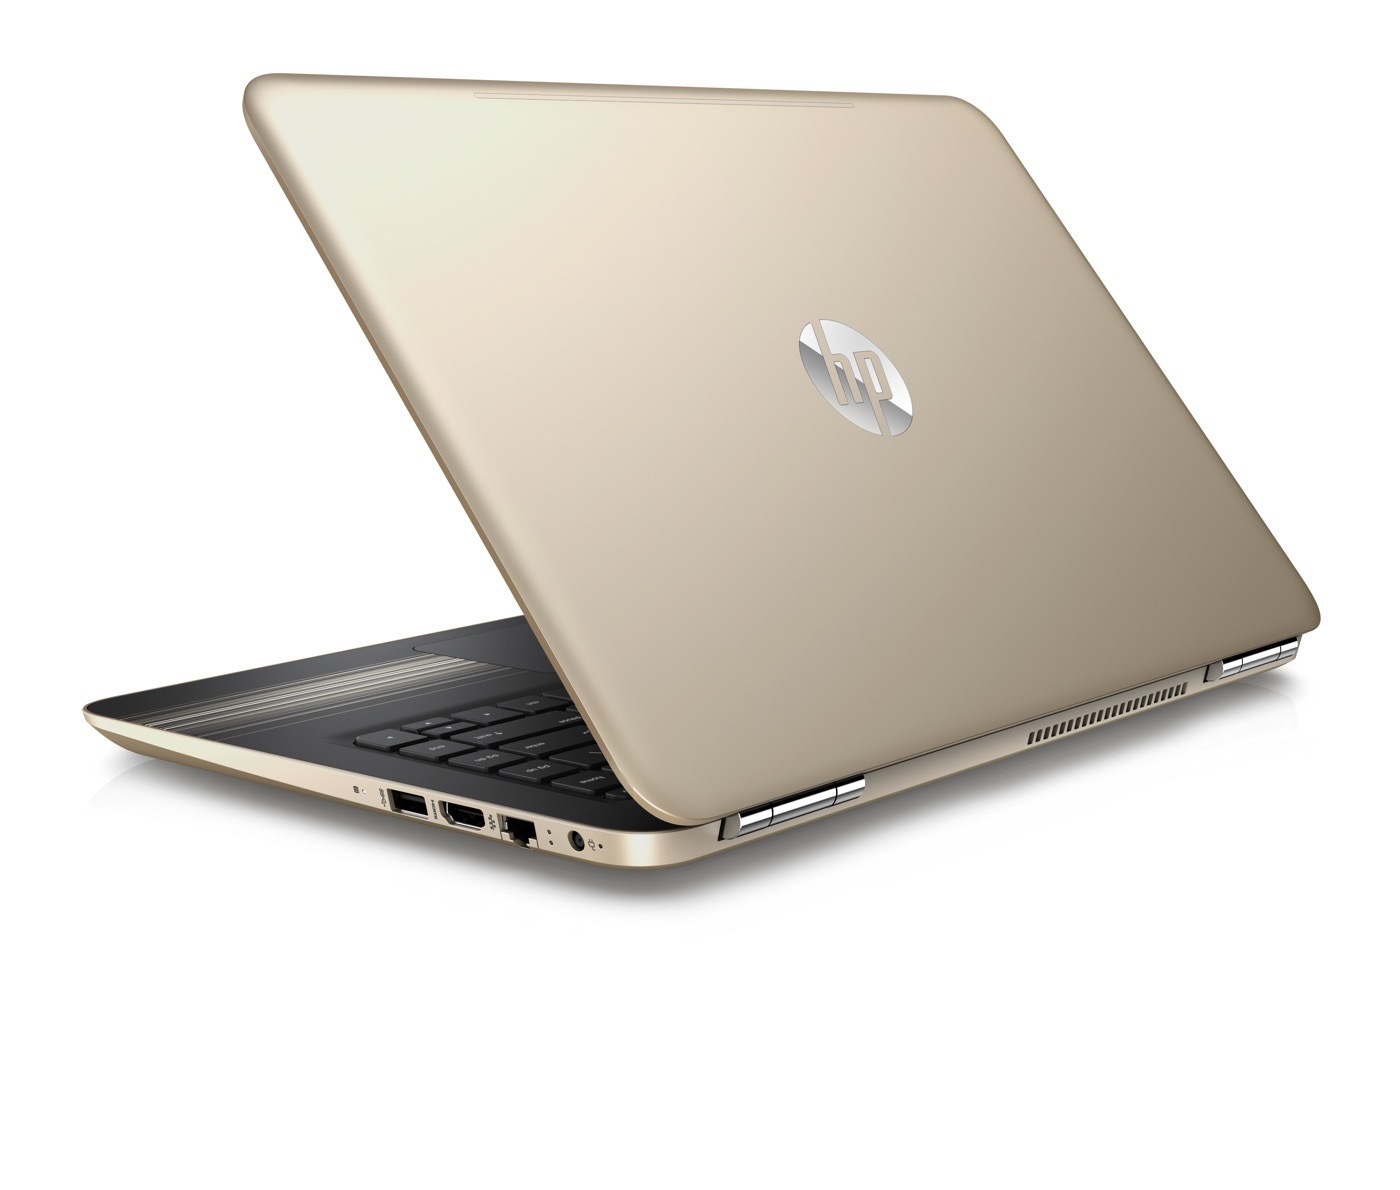 HP Debuts New Pavilion PC Lineup Including A 15 Inch